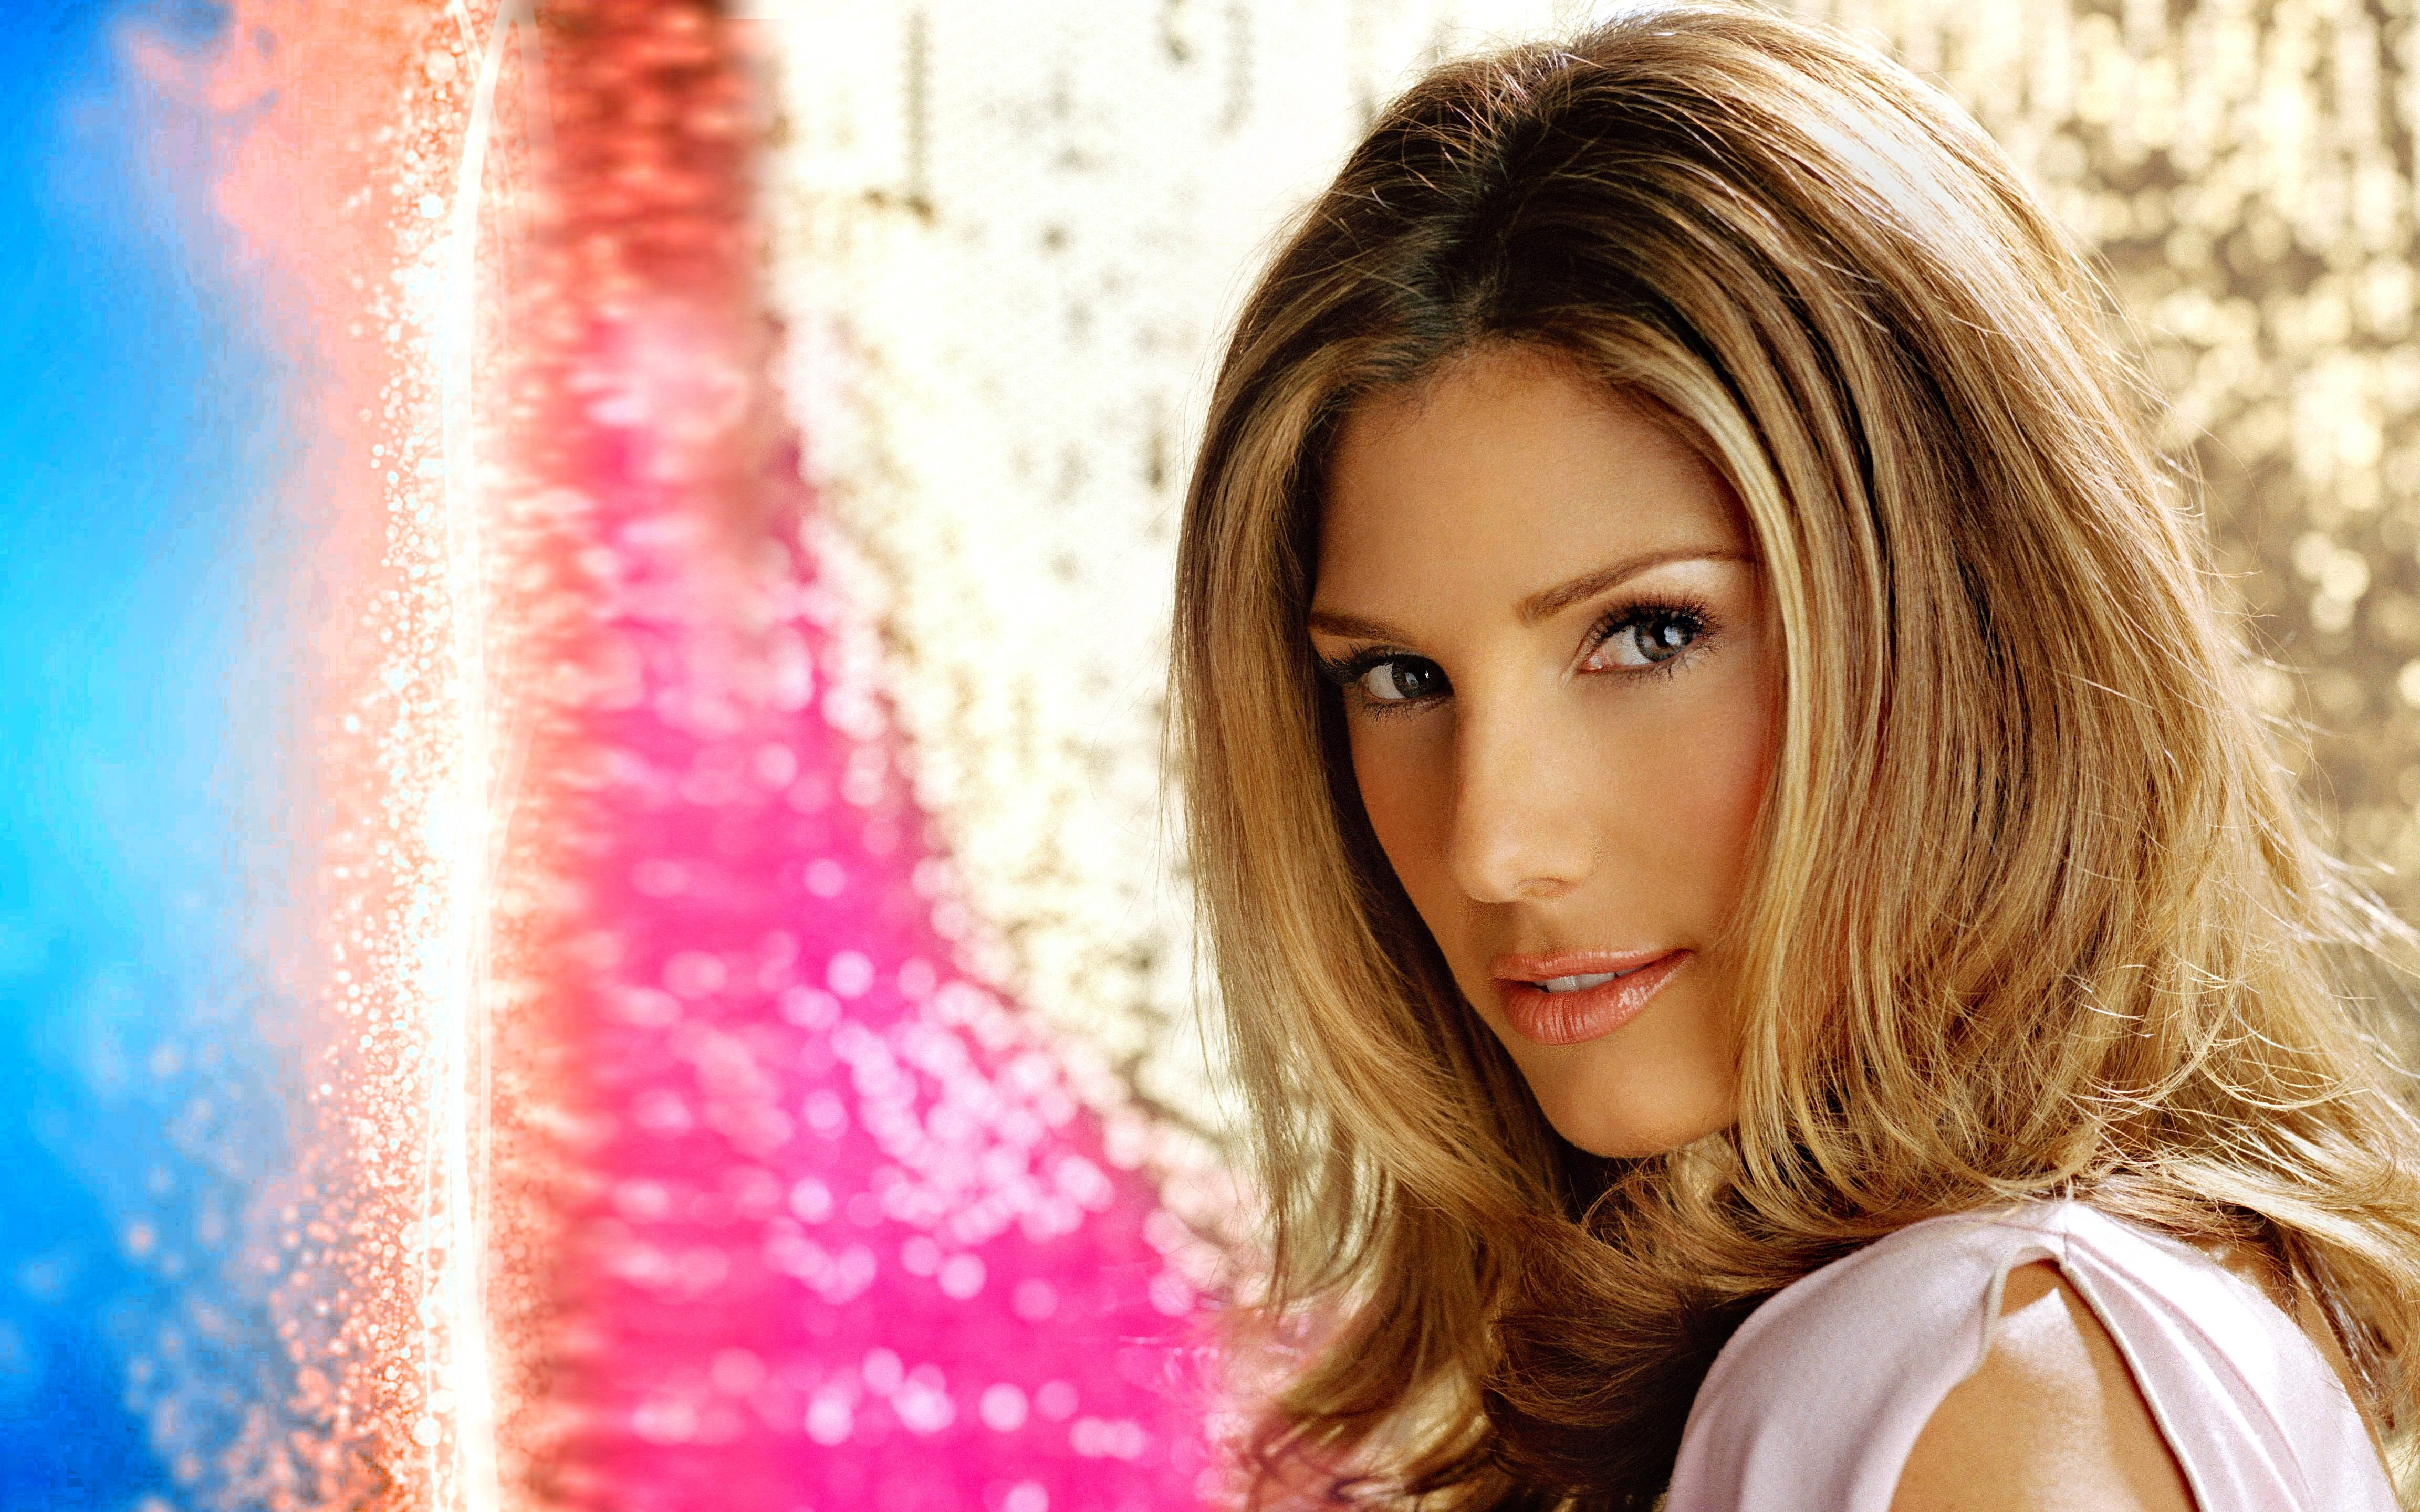 4608x2880 - Daisy Fuentes Wallpapers 15